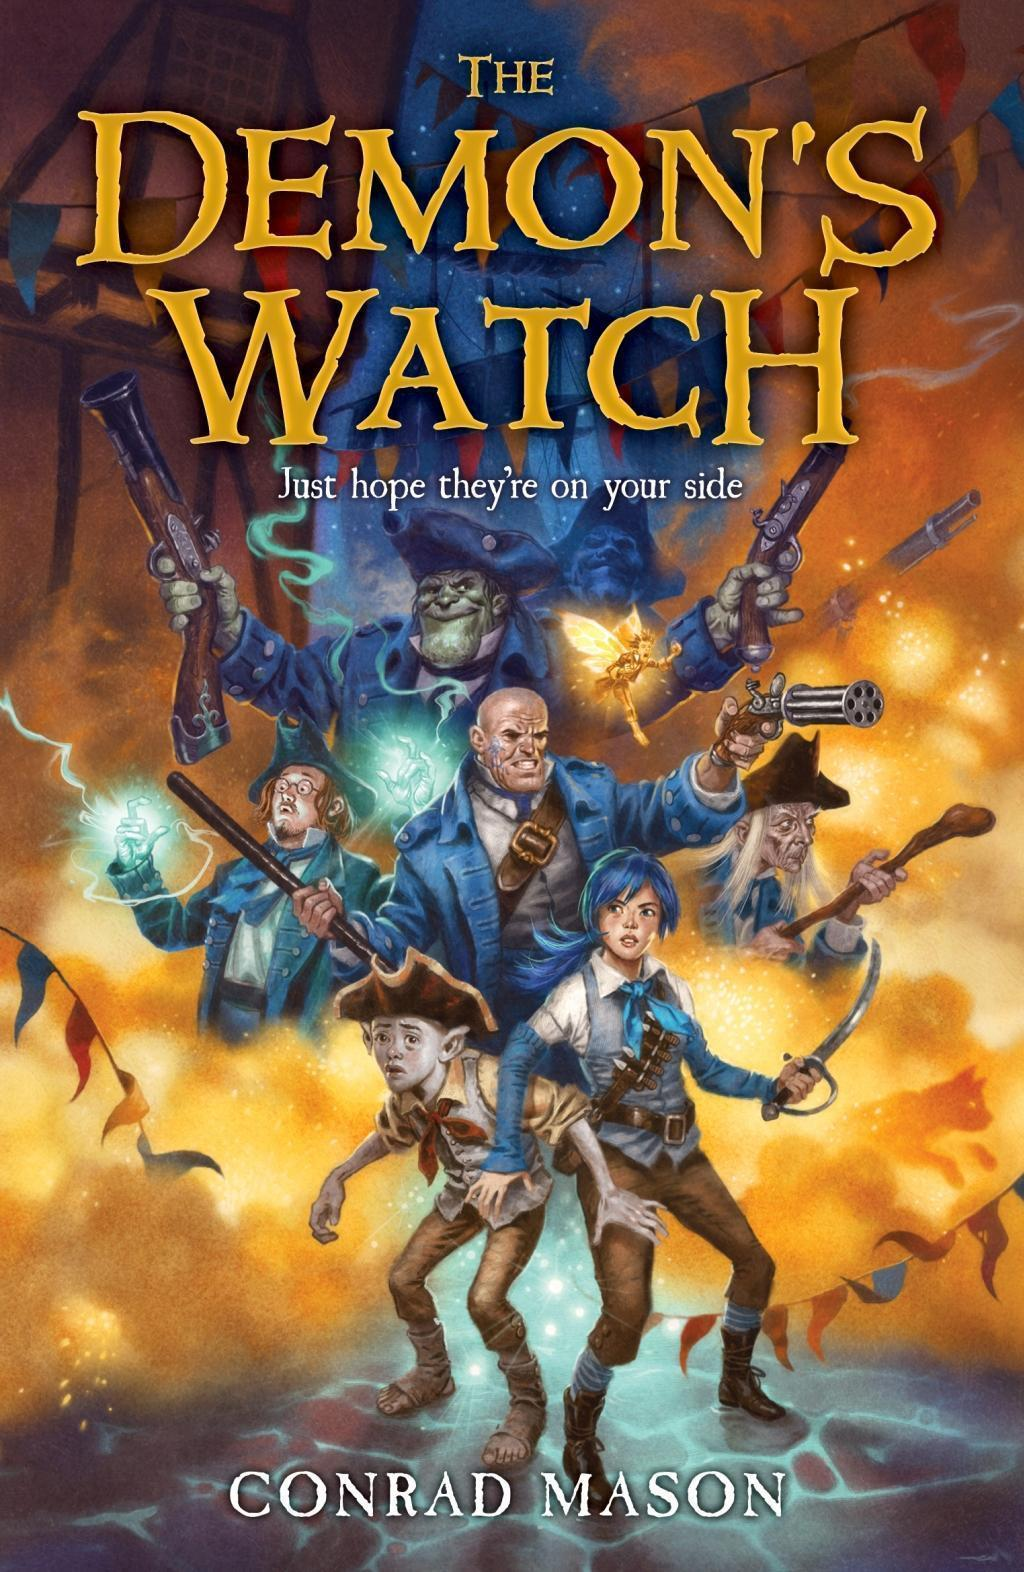 The Demon's Watch